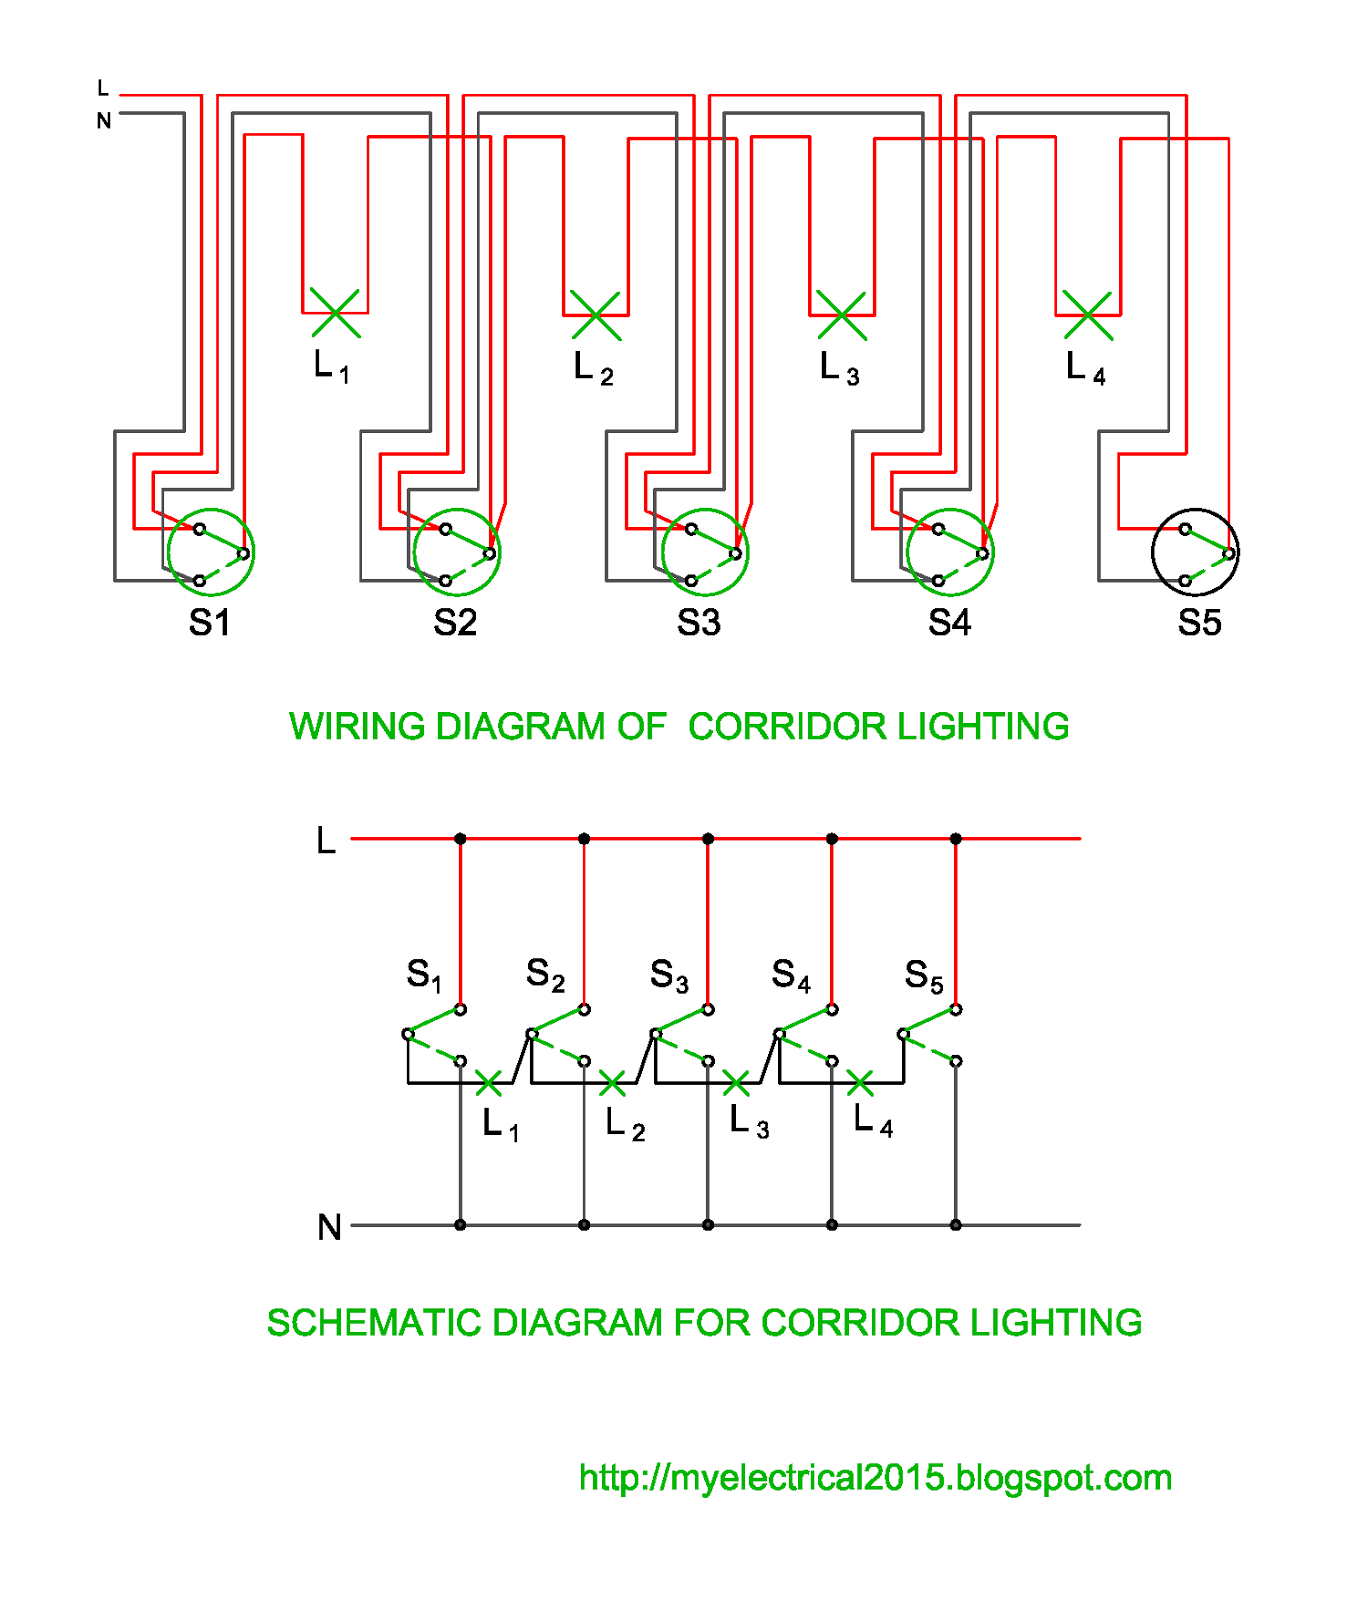 wiring and schematic diagram of corridor lighting [ 1368 x 1600 Pixel ]